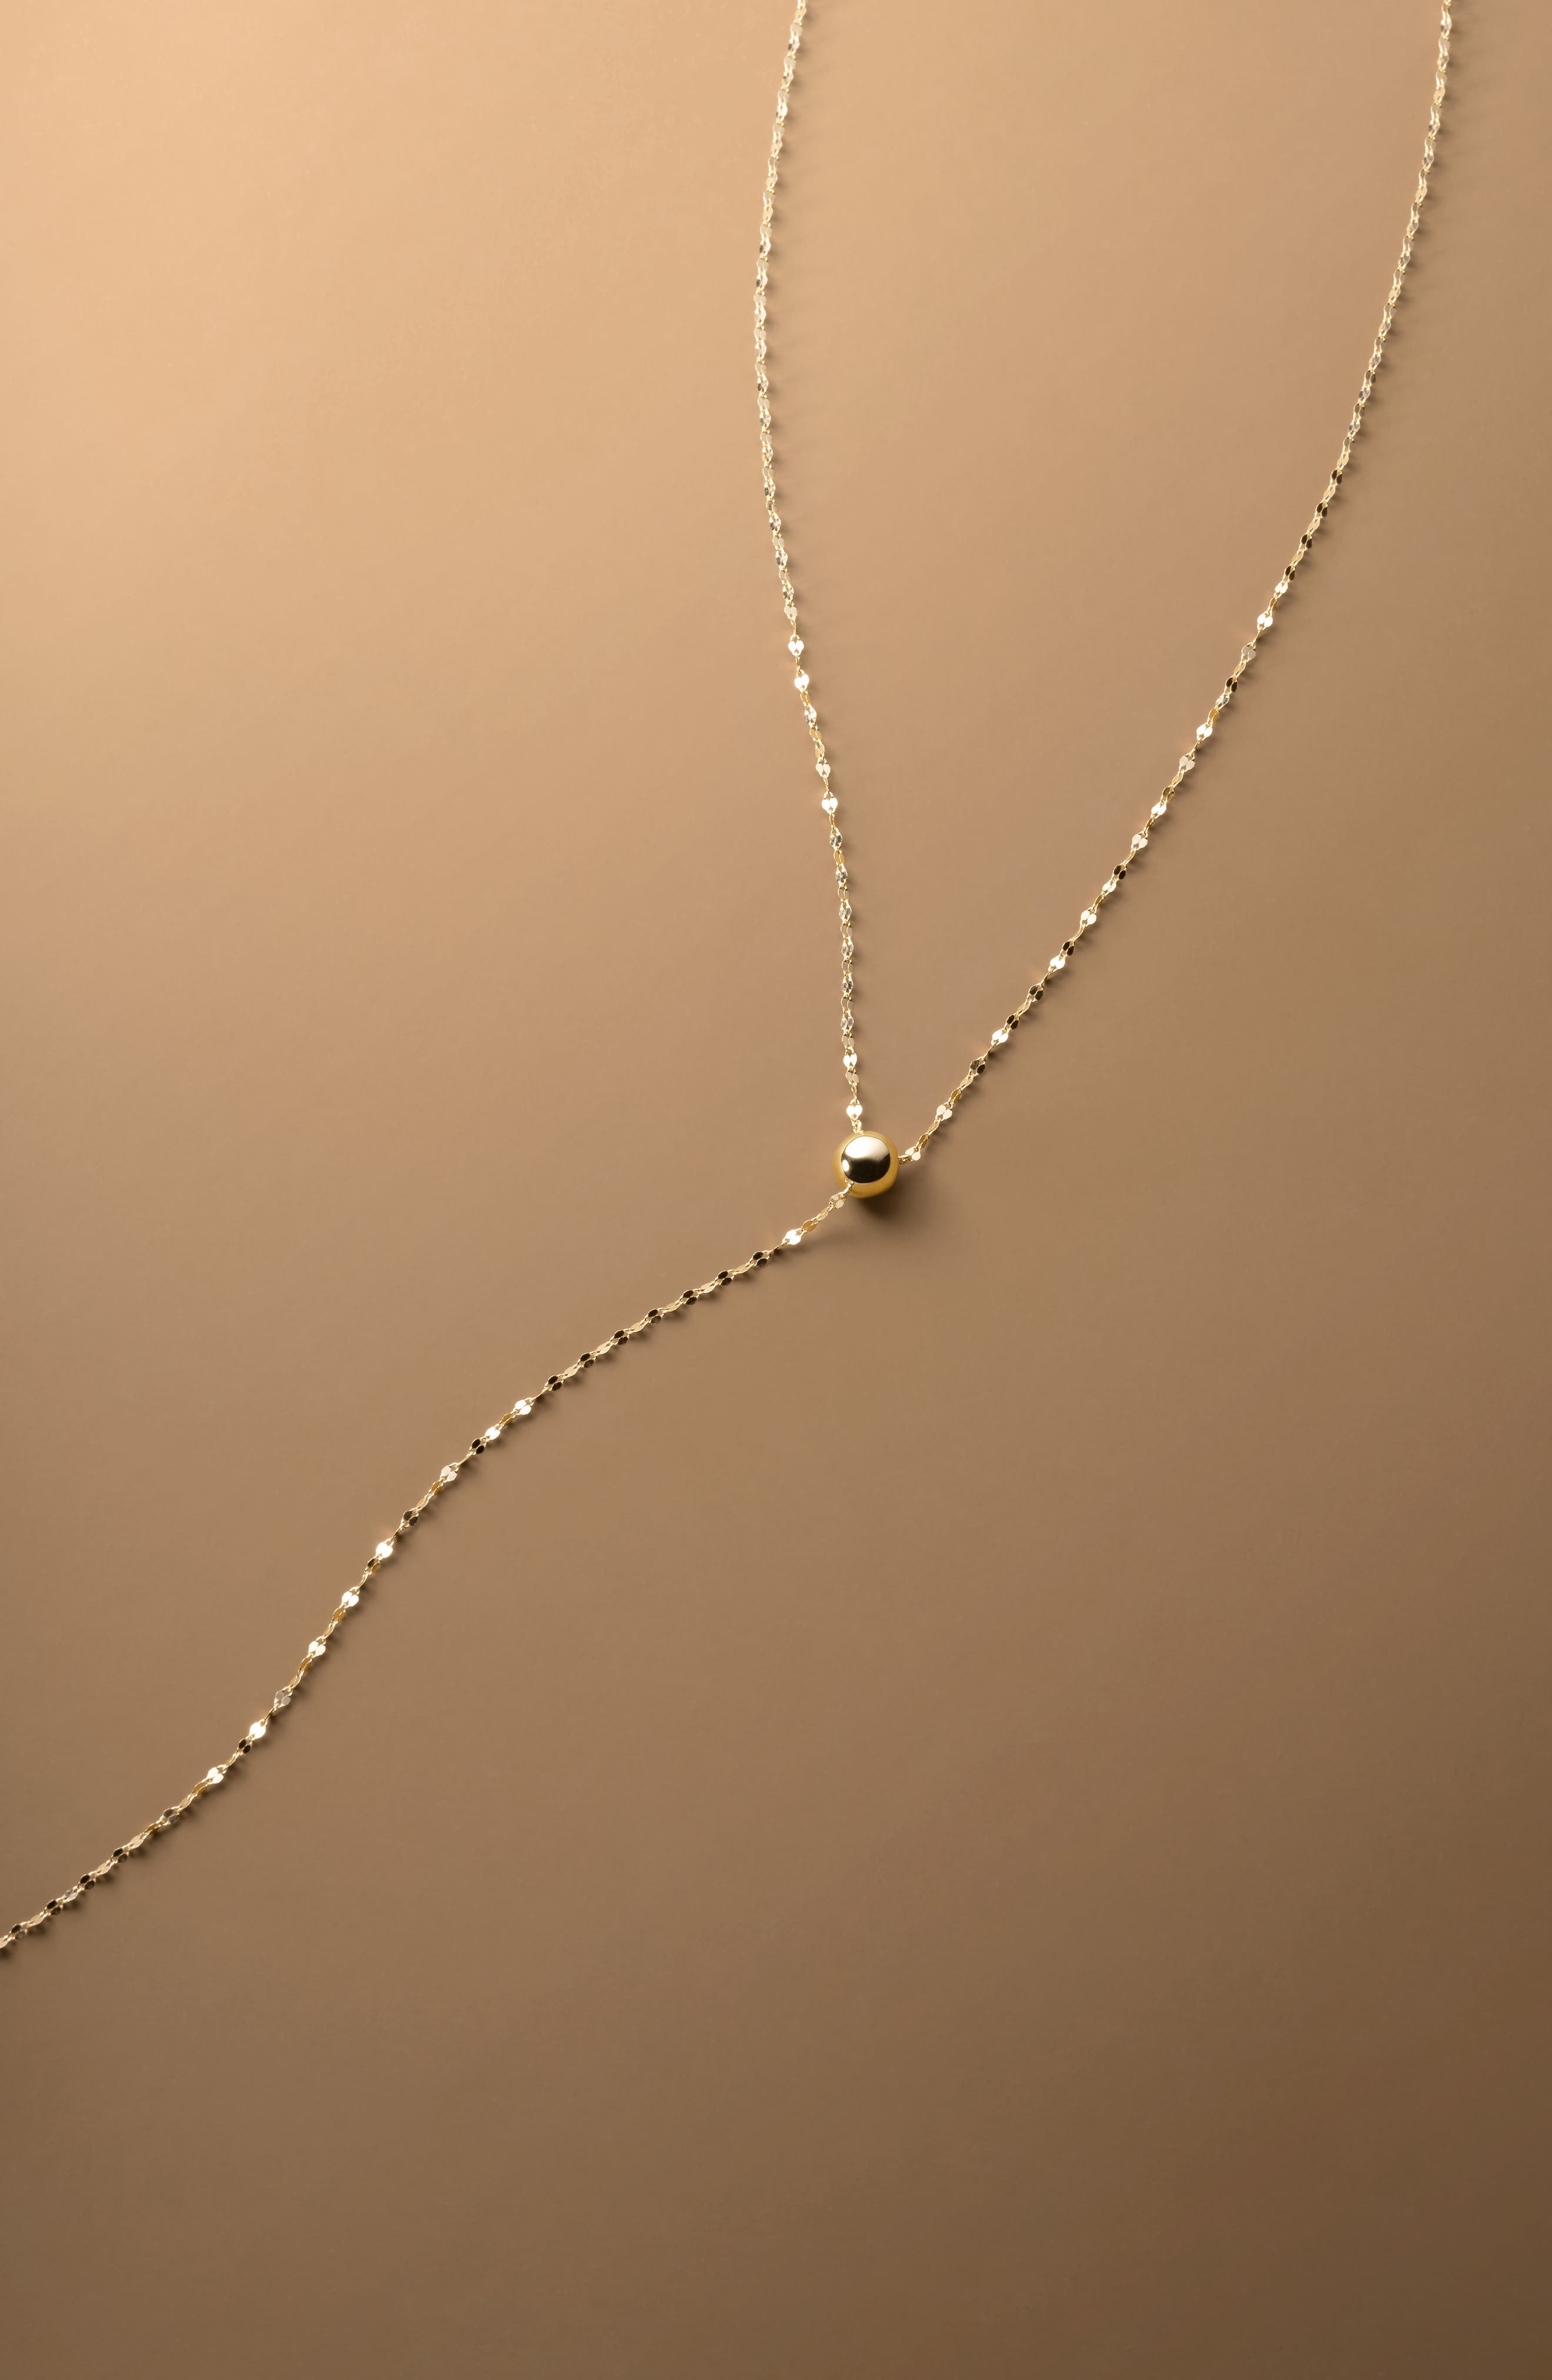 Blake Chain Choker Necklace,                             Alternate thumbnail 3, color,                             YELLOW GOLD